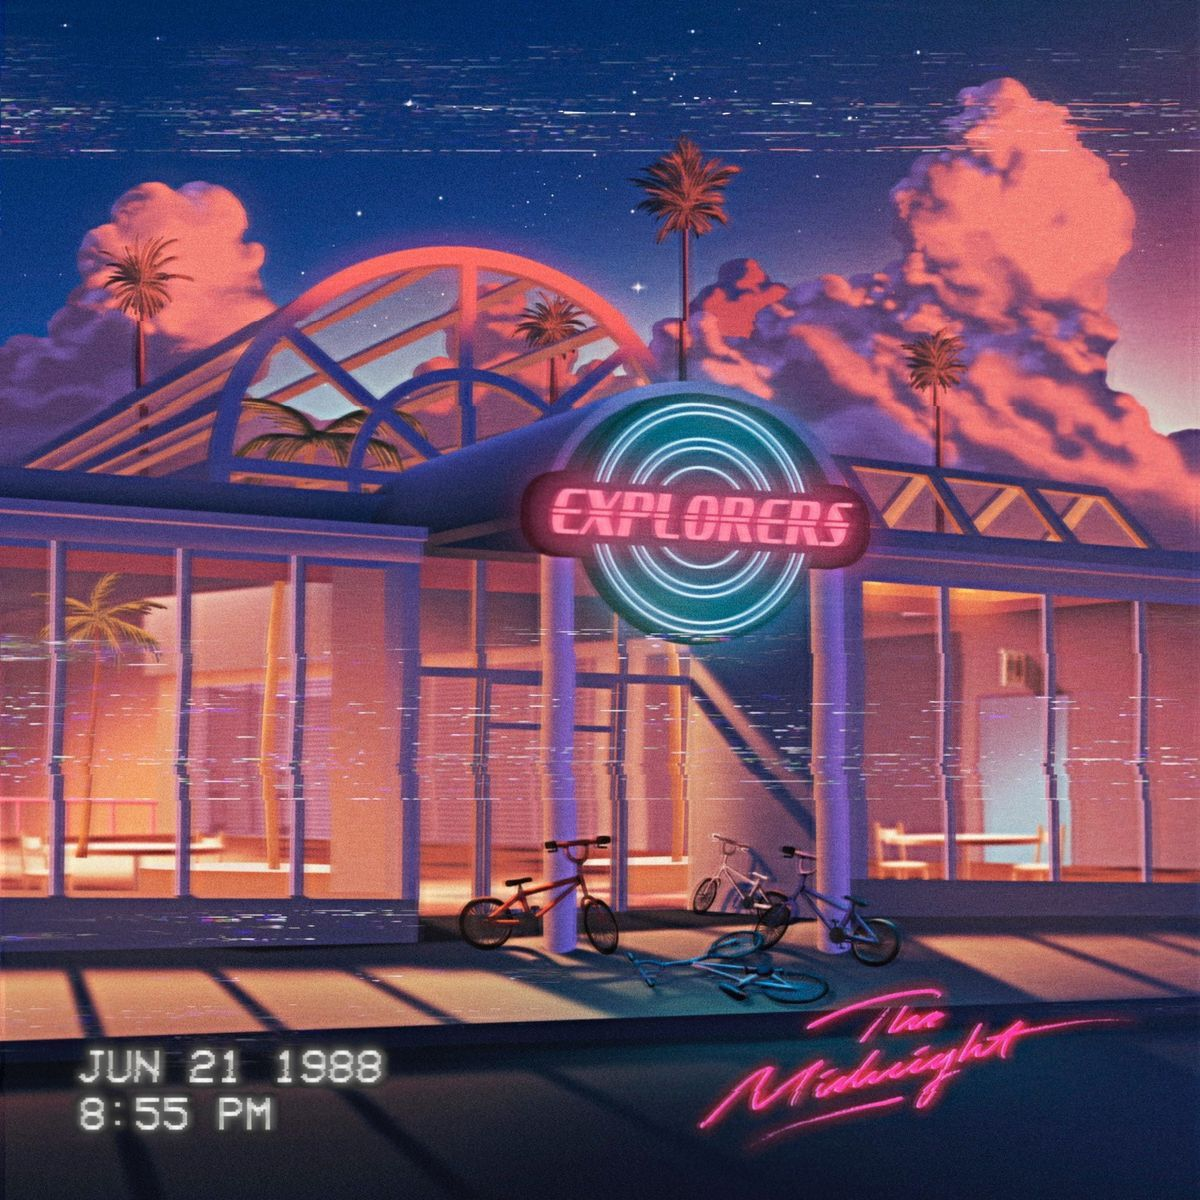 Pin By Bangtan0ffical On Wave Aesthetic Wallpapers Neon Aesthetic Retro Futurism